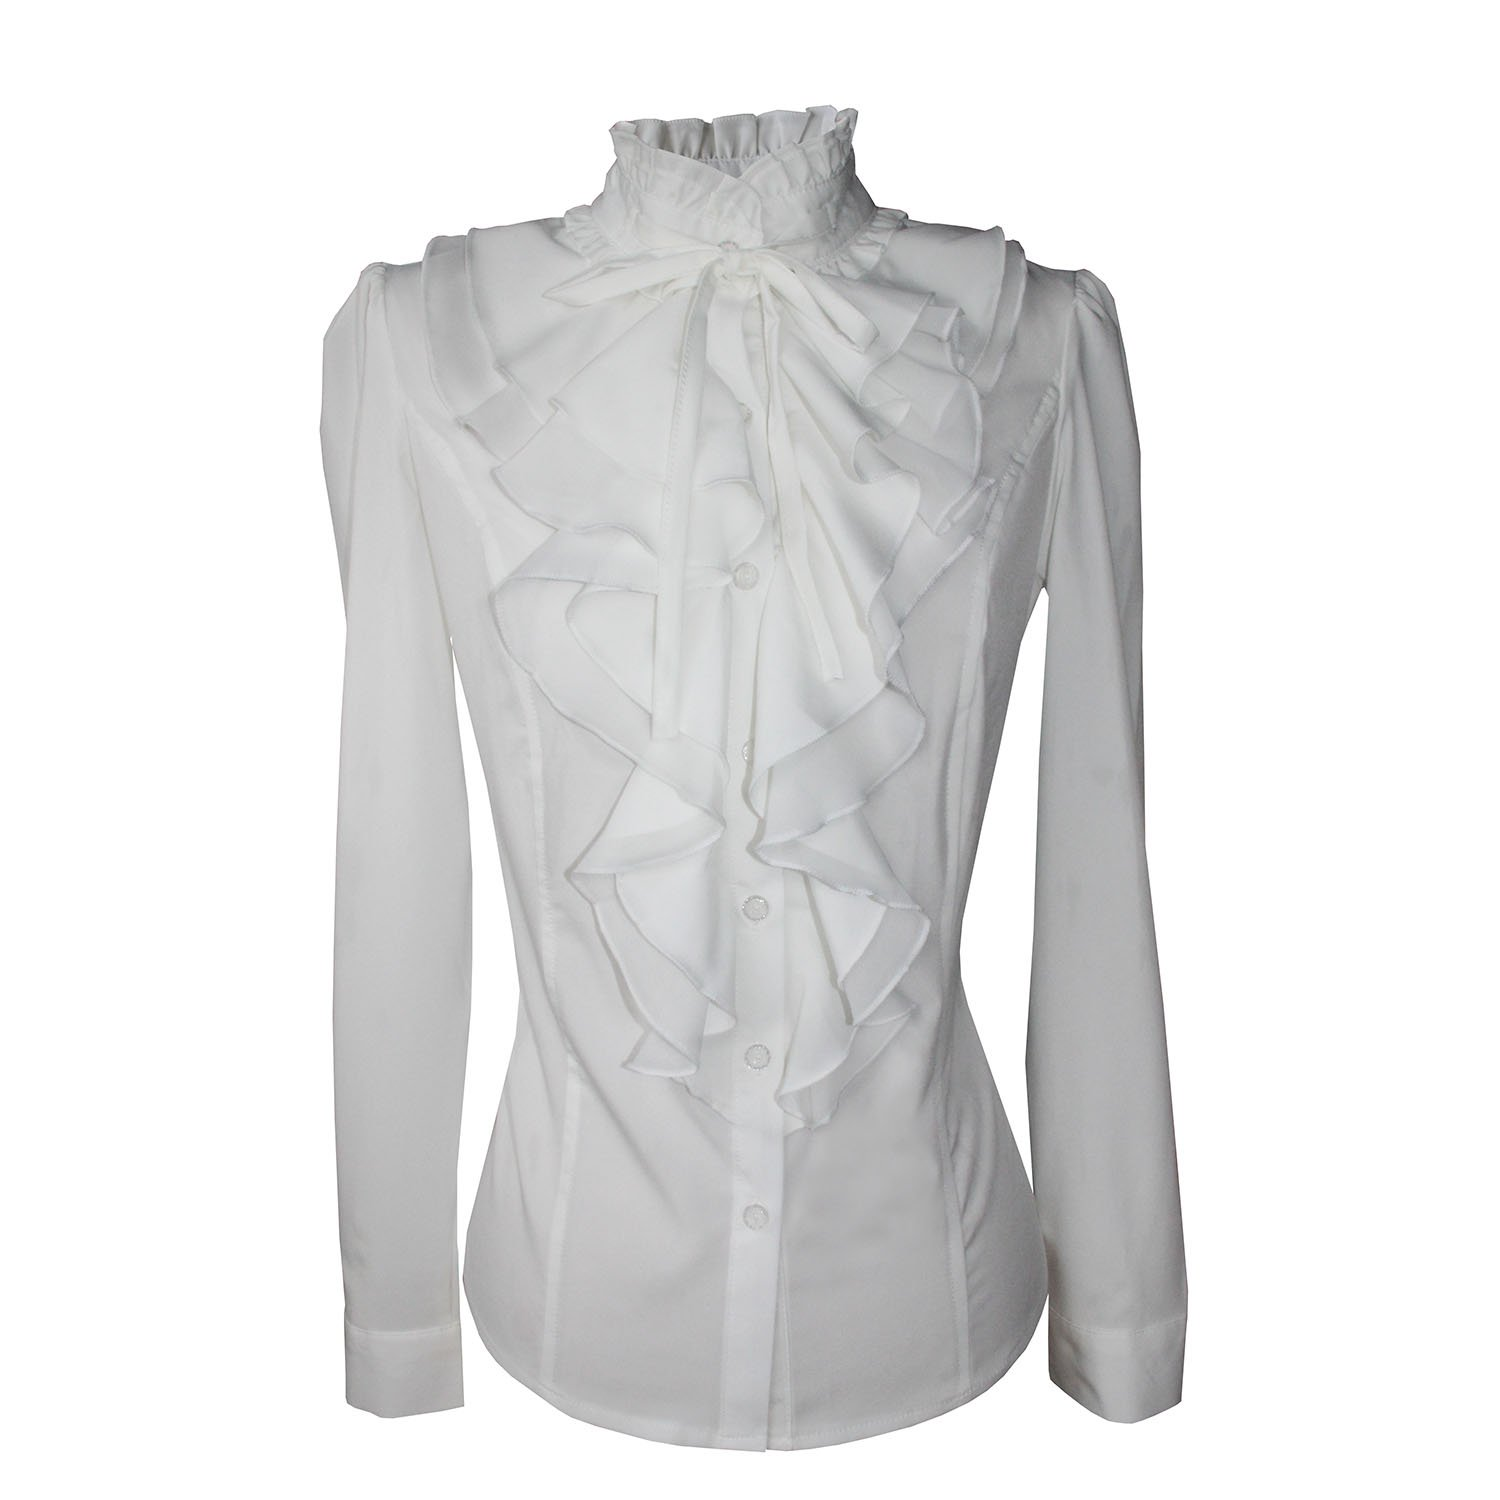 Victorian Clothing, Costumes & 1800s Fashion Y&Z Shirts for Women Stand-up Collar Vintage Victoria Ruffle BS02 $18.99 AT vintagedancer.com